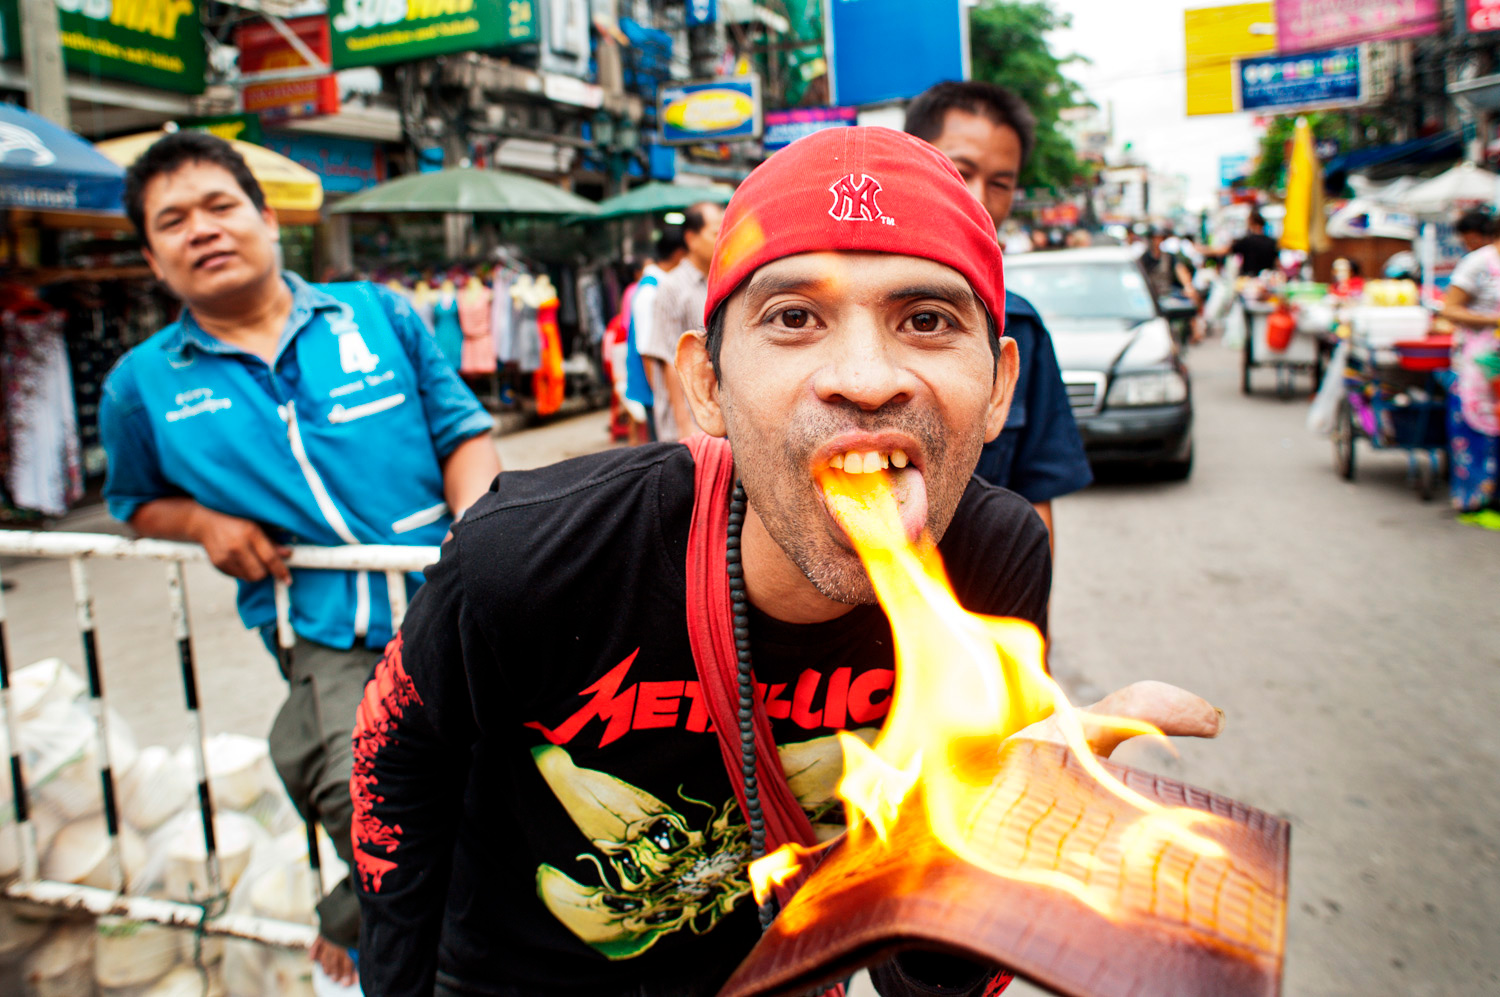 Flaming Wallet illustration Is Being Shy a Good Reason to Take Candid Photos